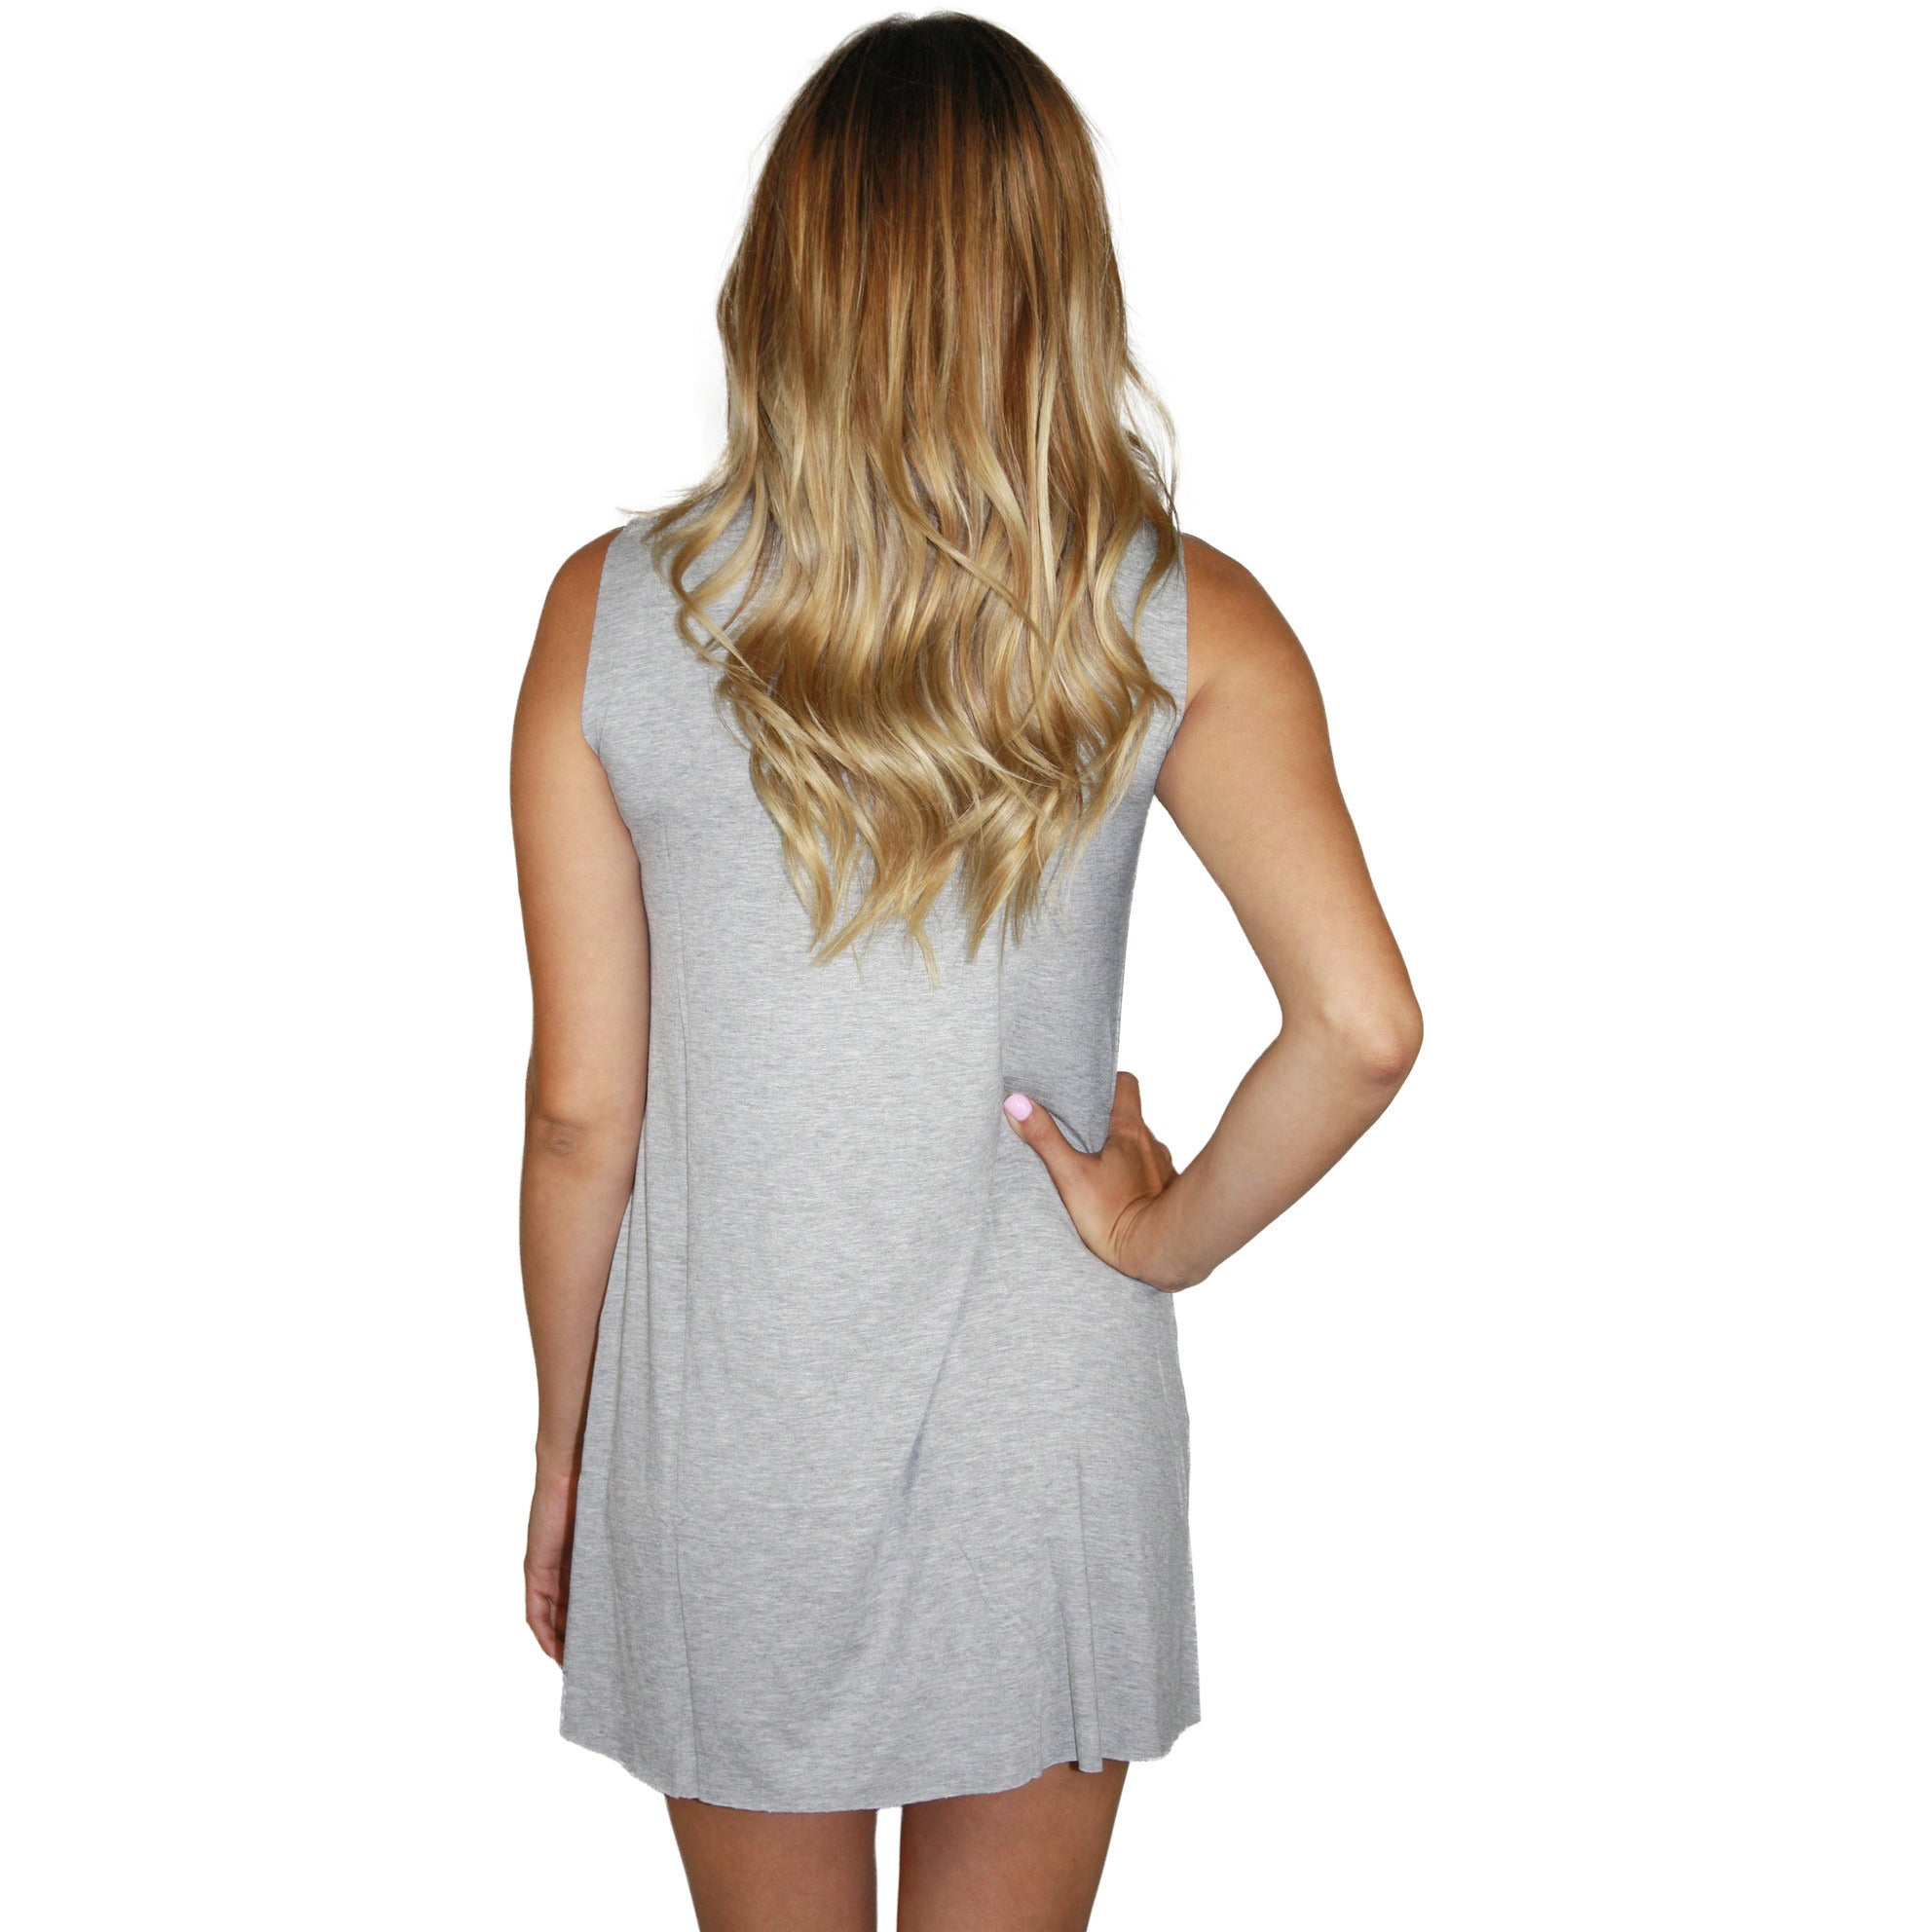 Deanna Foil Show Love Sleeveless Dress in Heather